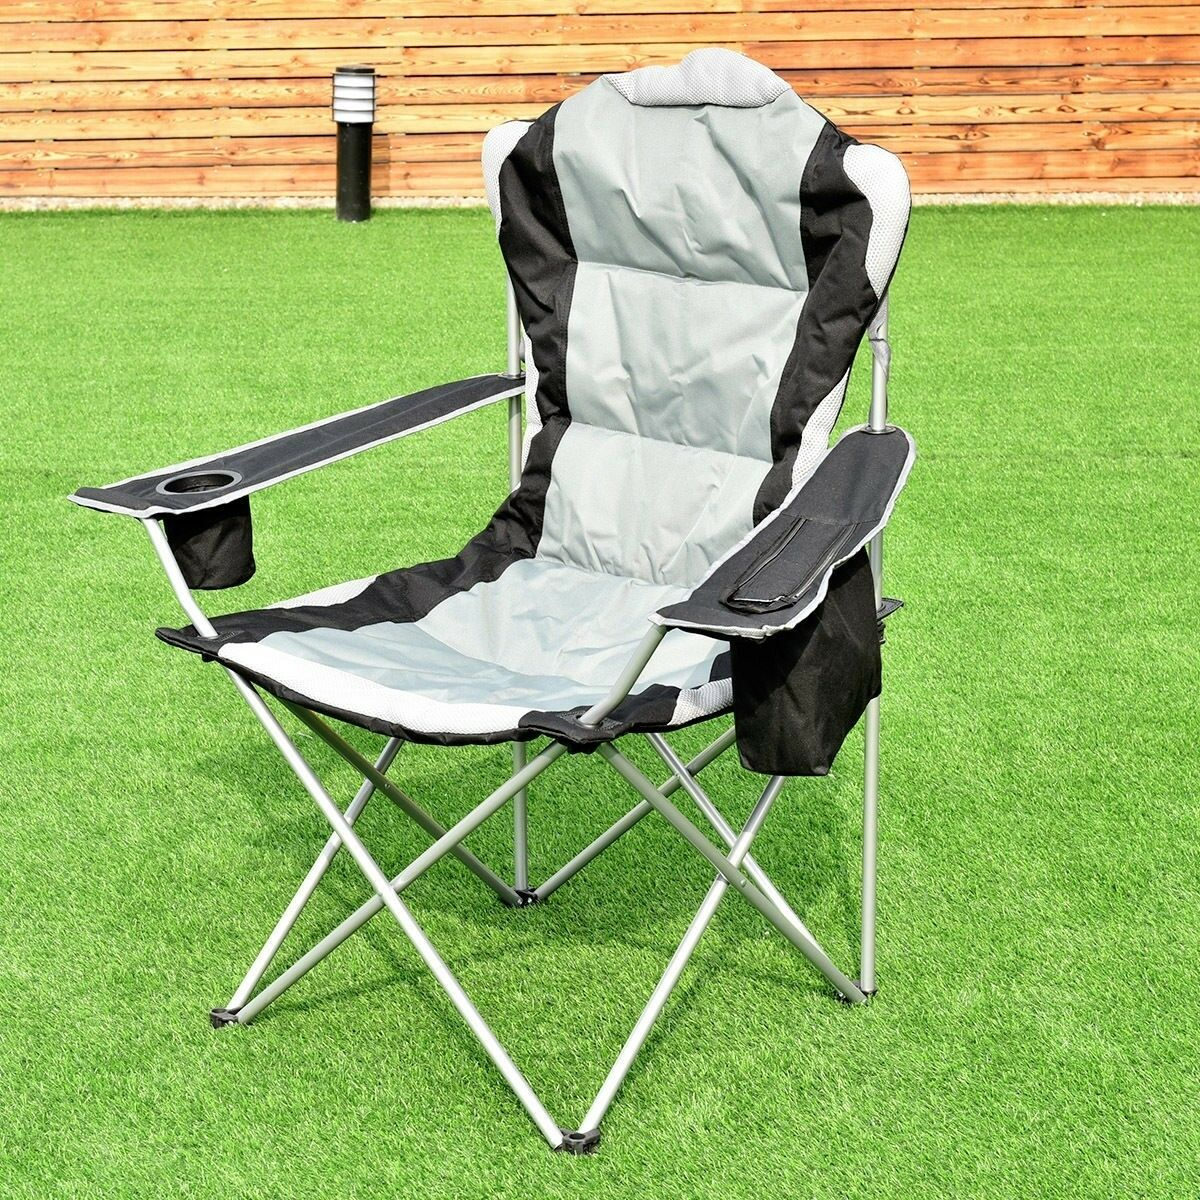 Portable Camping  Chair Seat Cup Holder Beach Picnic Outdoor Folding Chair & Bag  save up to 80%